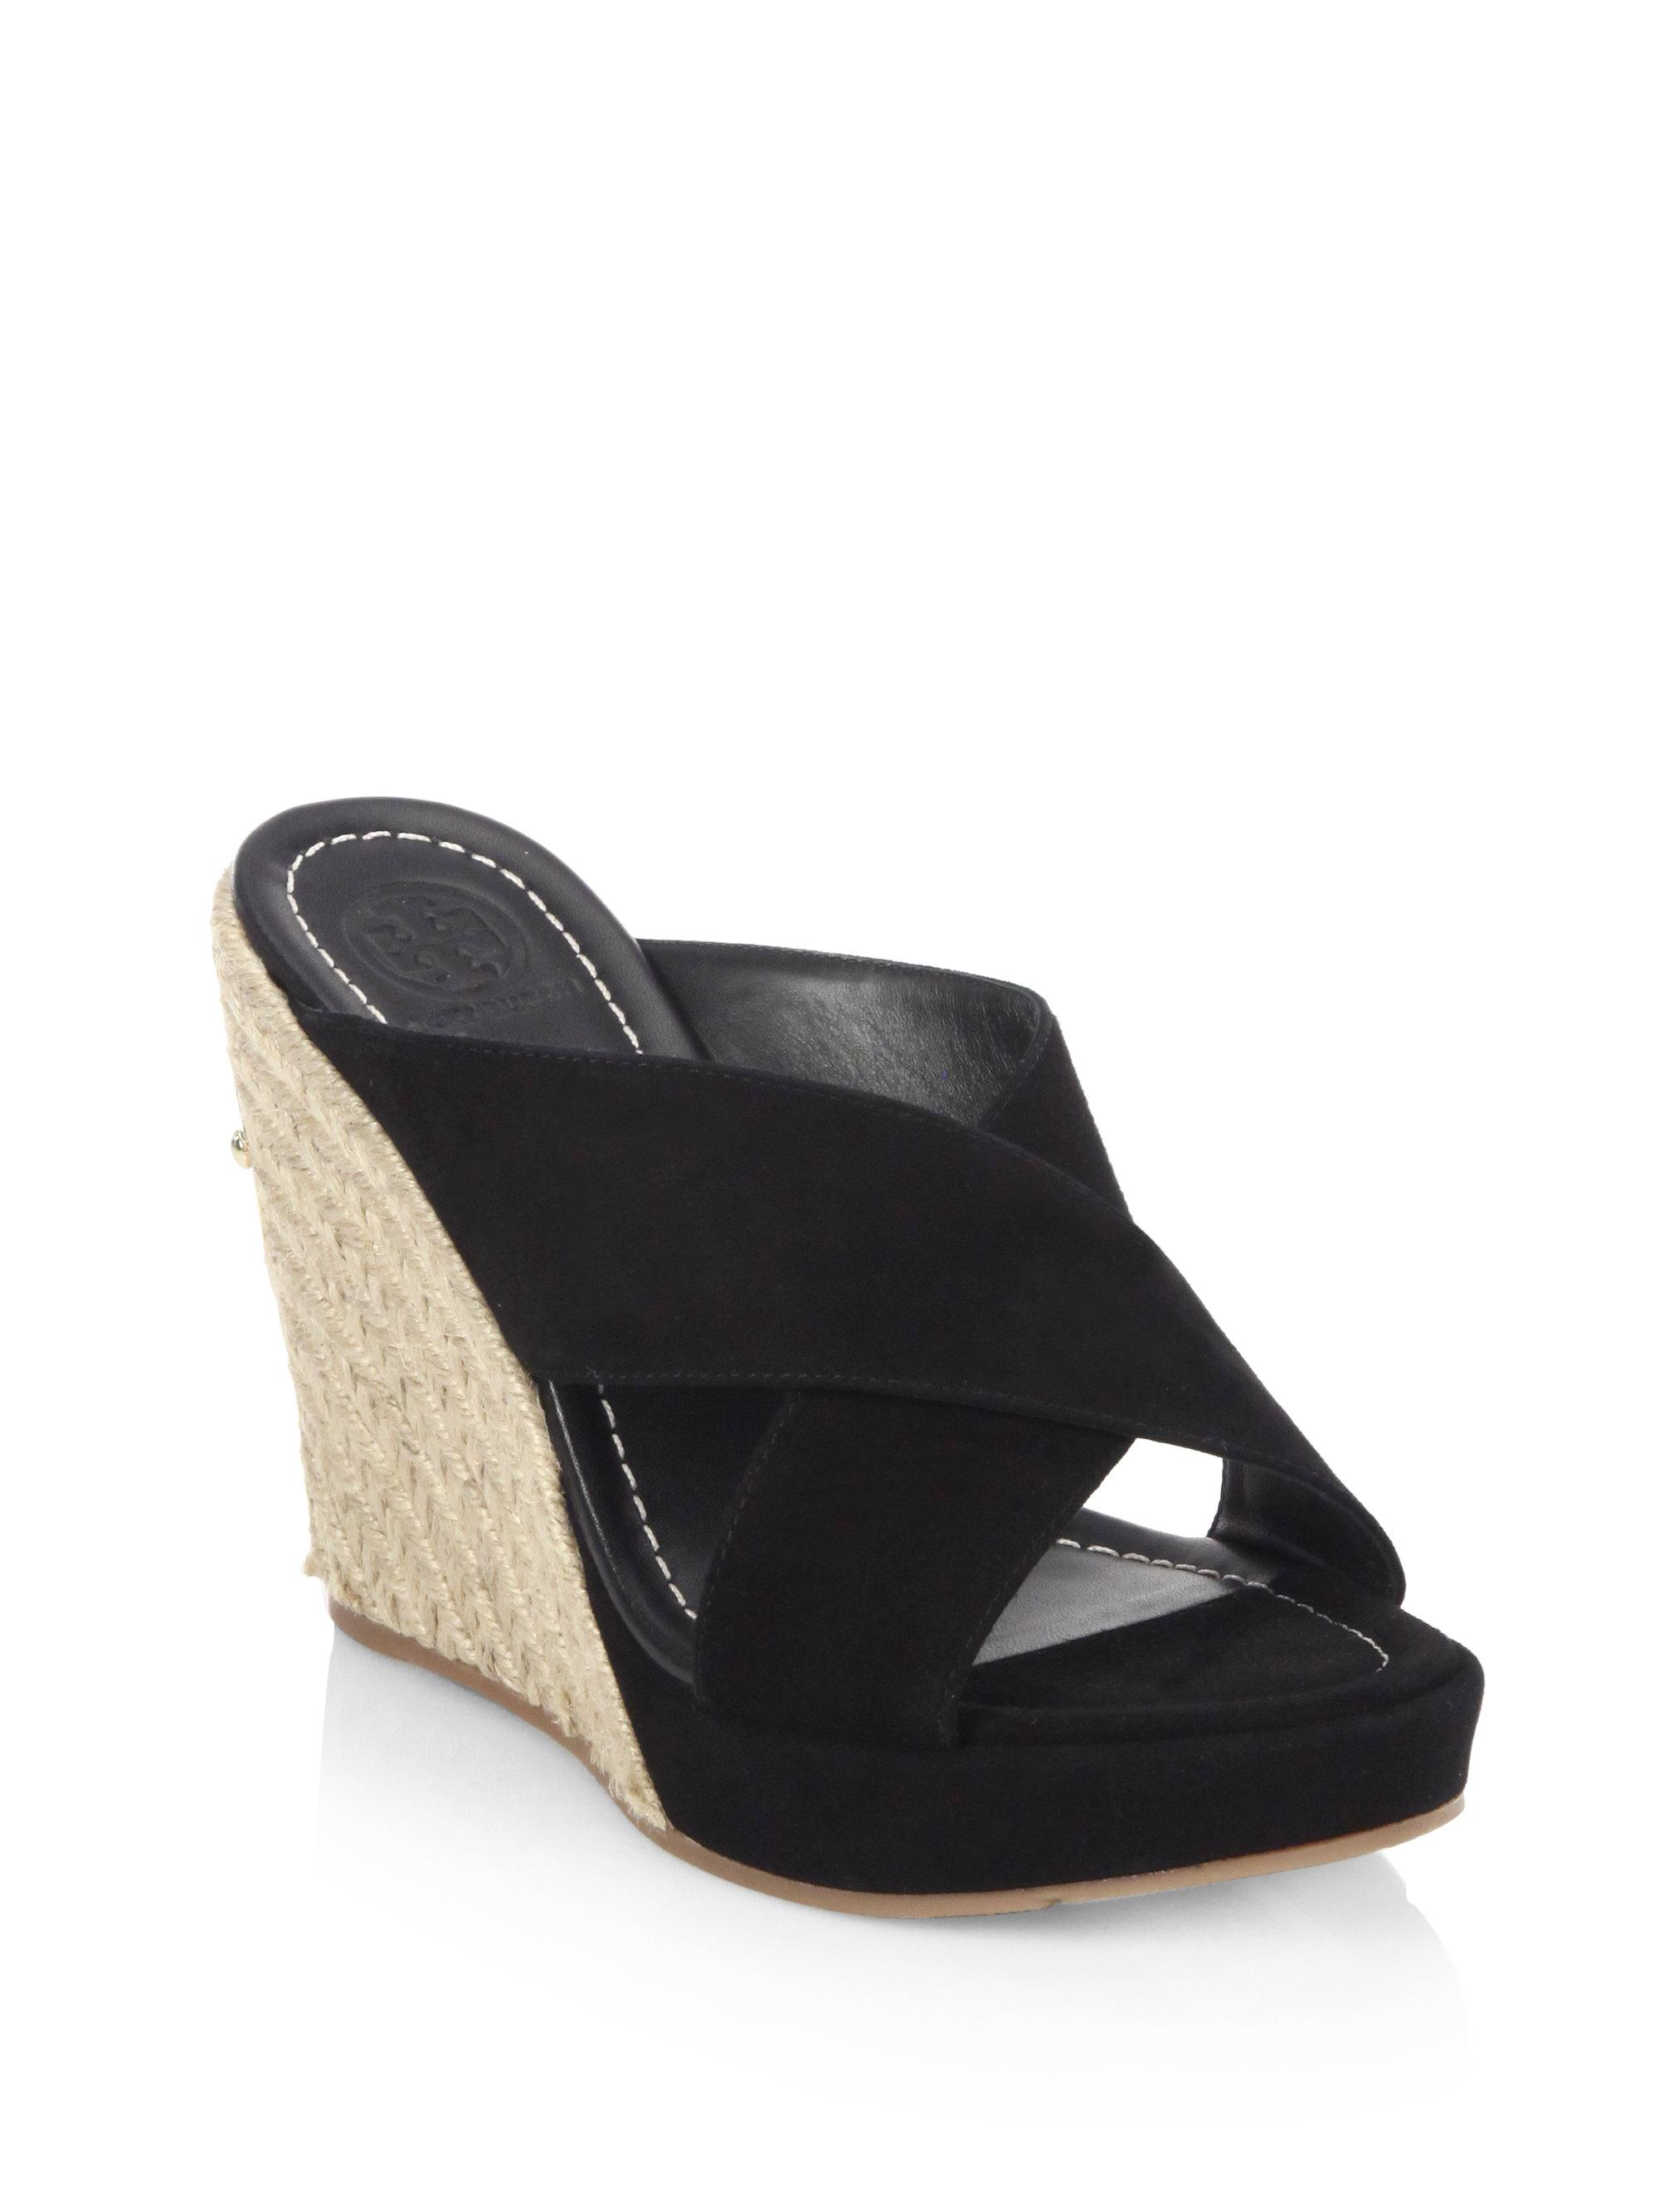 b5d0c0d29437 Lyst - Tory Burch Bailey Leather Wedge Mules in Black